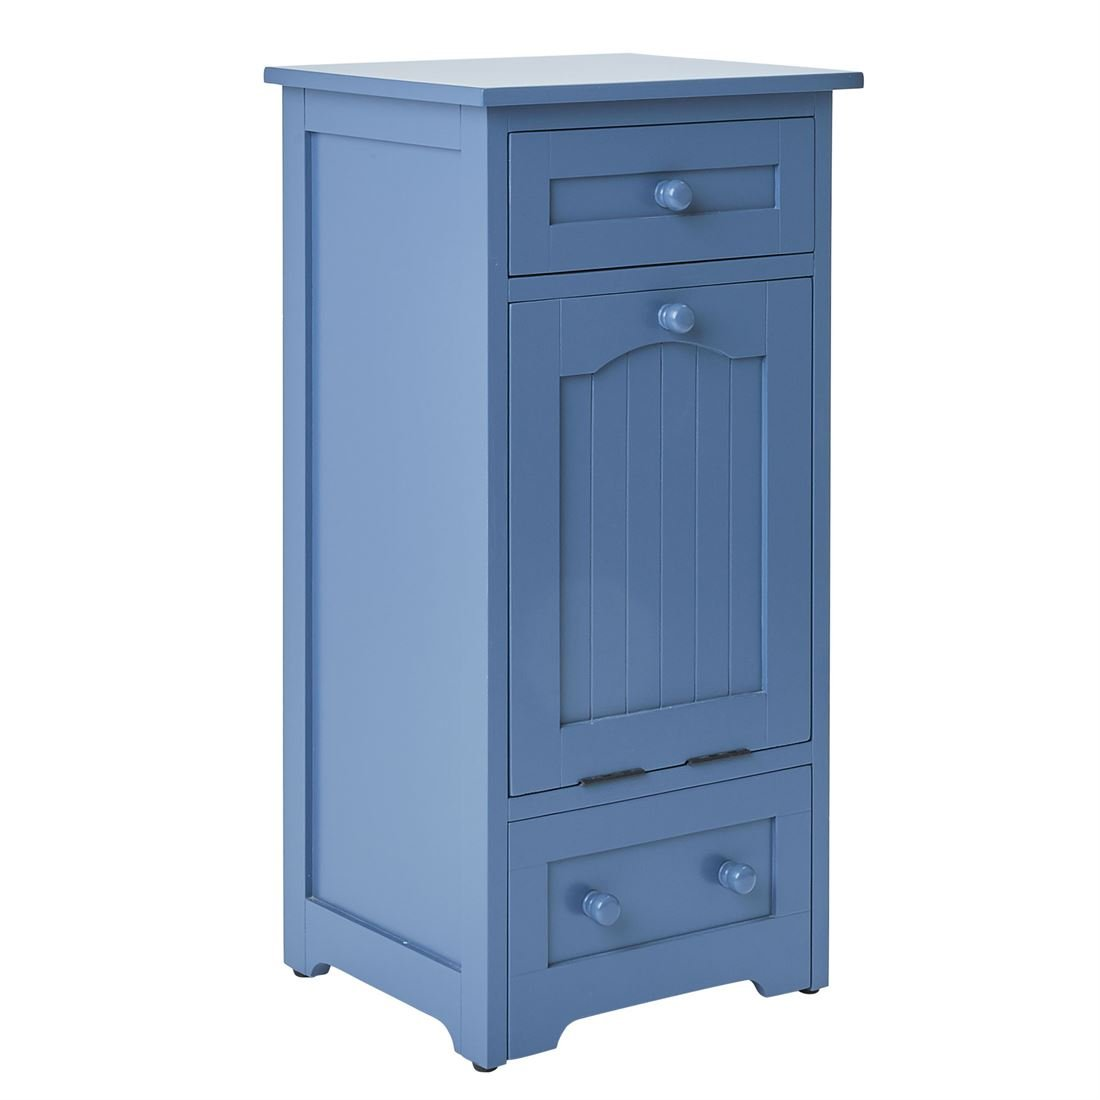 BrylaneHome Pet Food Storage Cabinet Blue